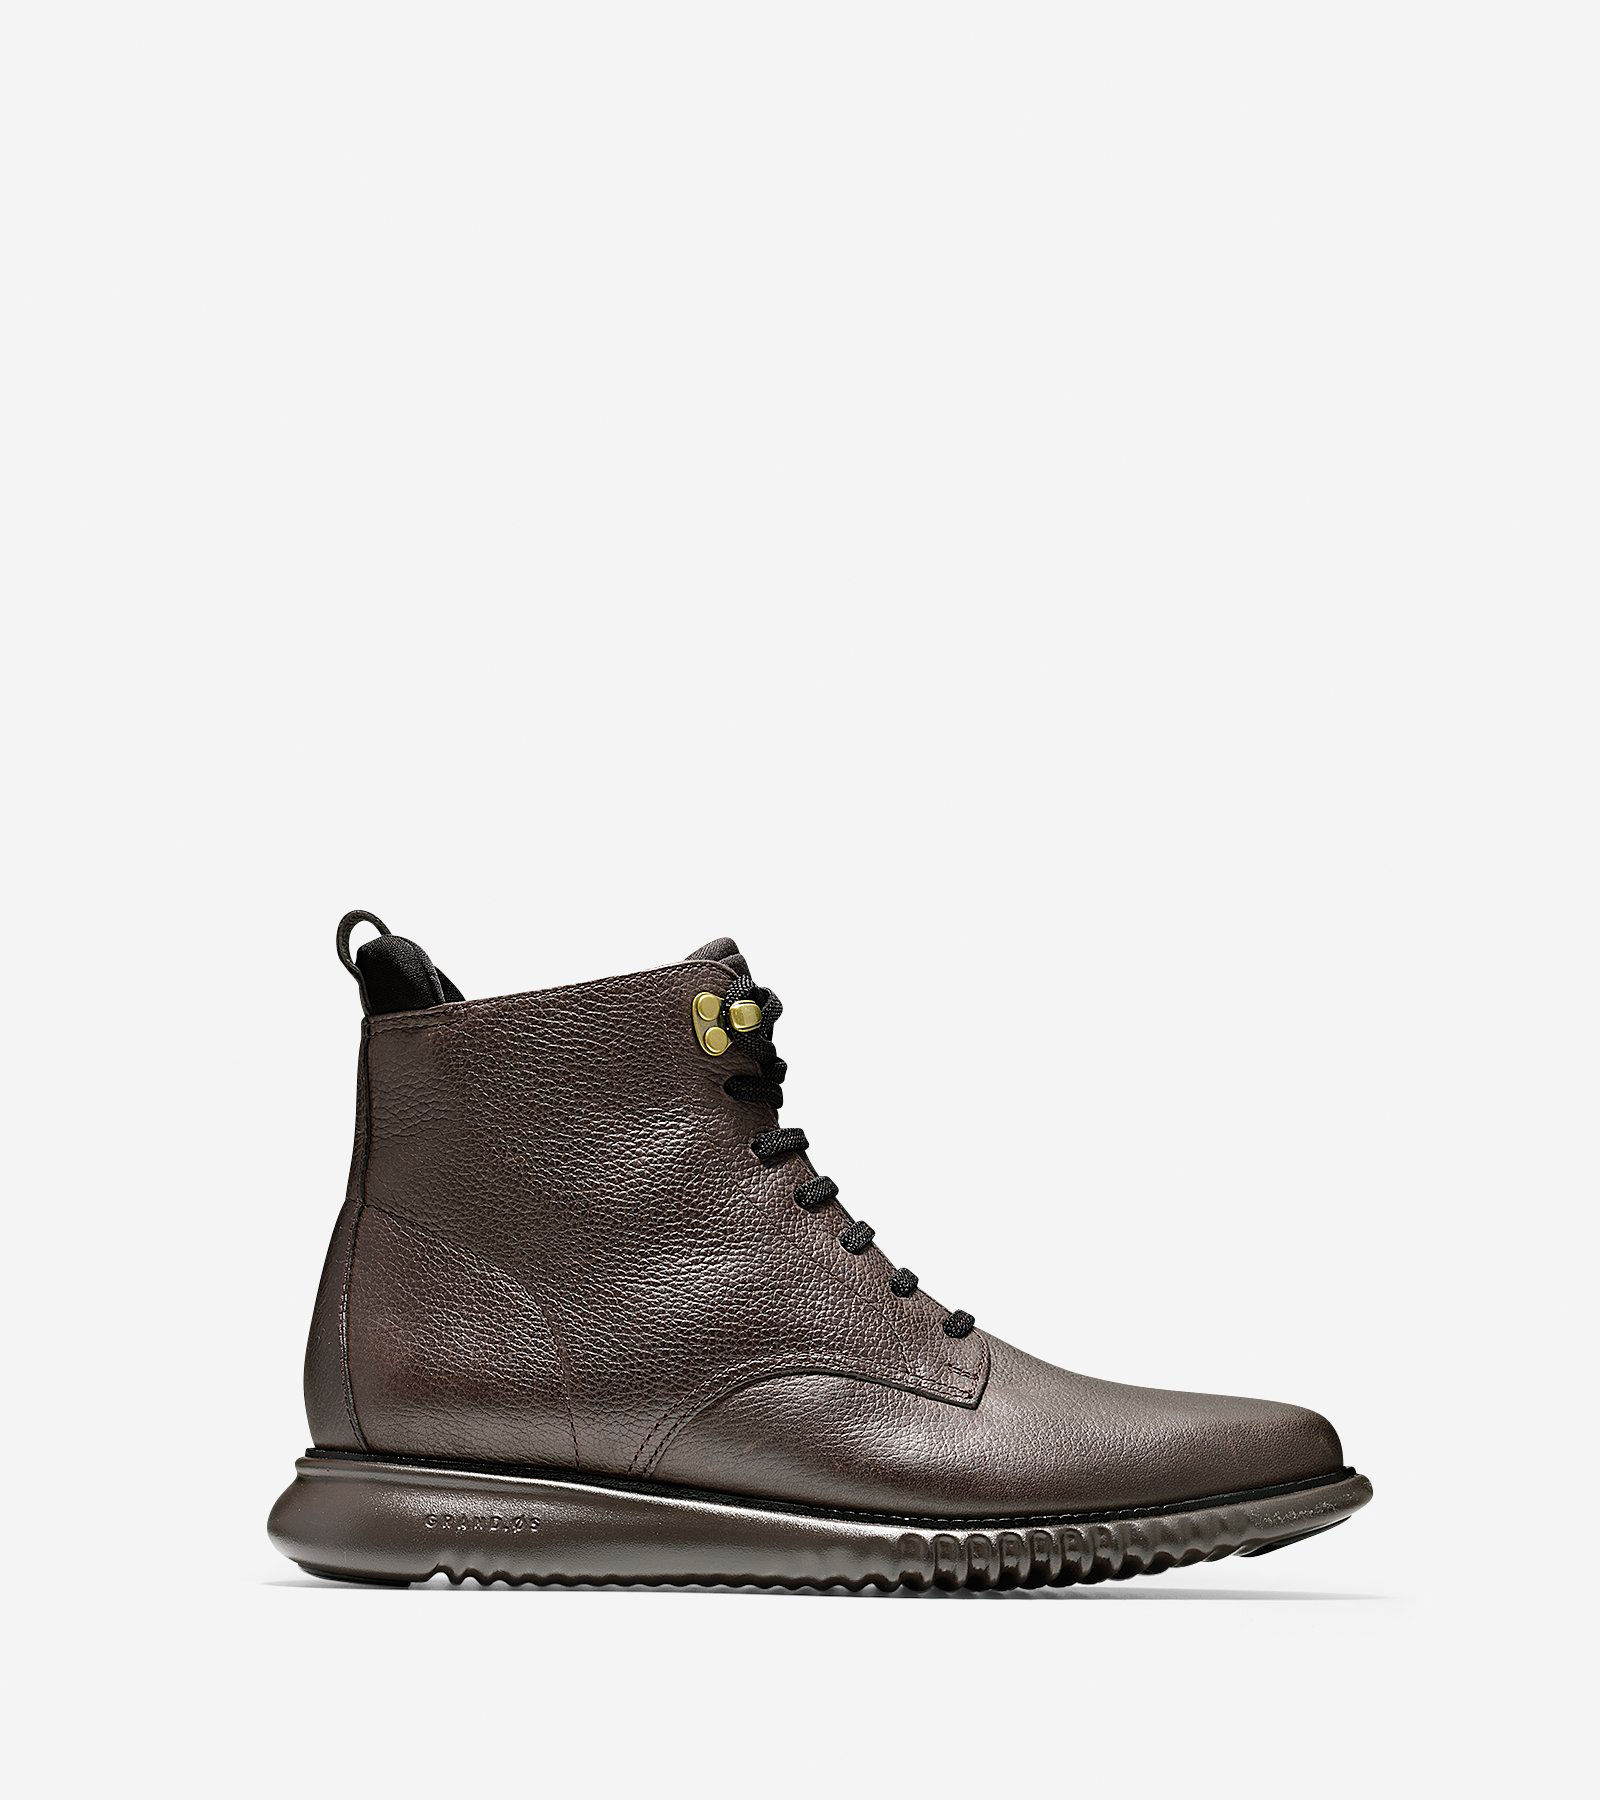 Cole Haan City Boot Review — What is a